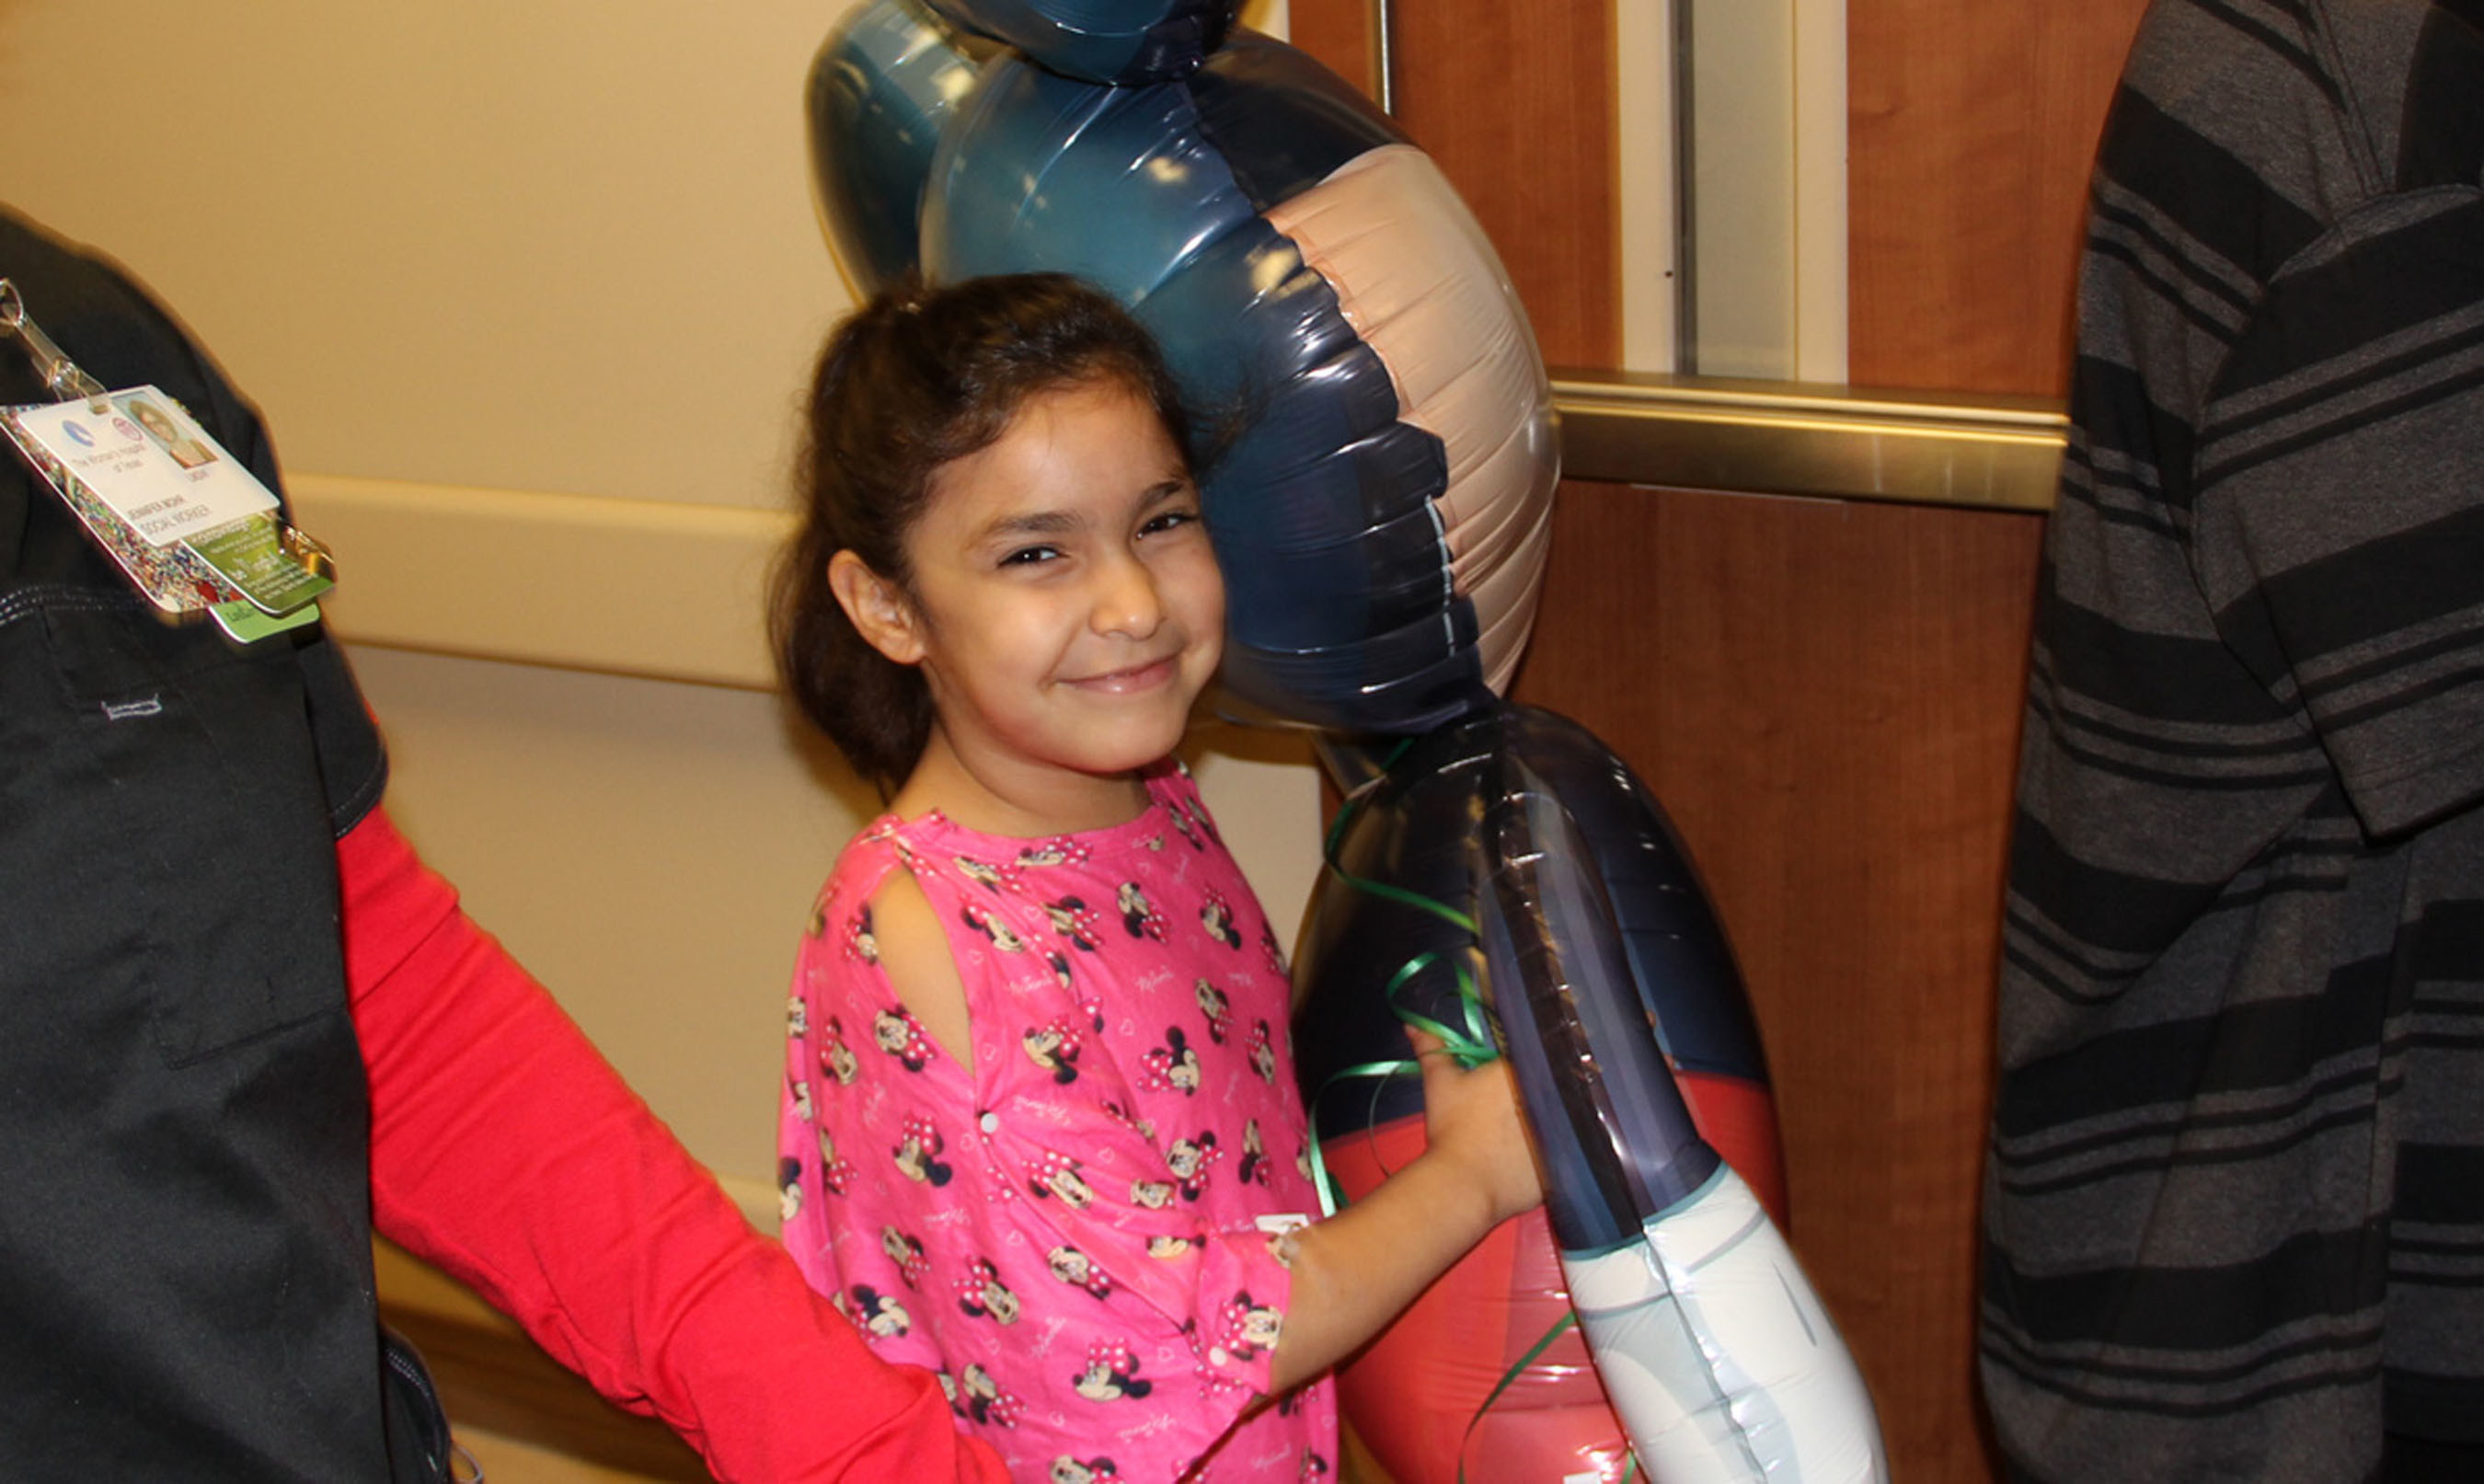 """Eight-year-old Nataly Sanchez got walk in the parade and carry a Mickey Mouse balloon that was as tall as she is. She said her cheeks were """"very numb because I was smiling so much."""""""